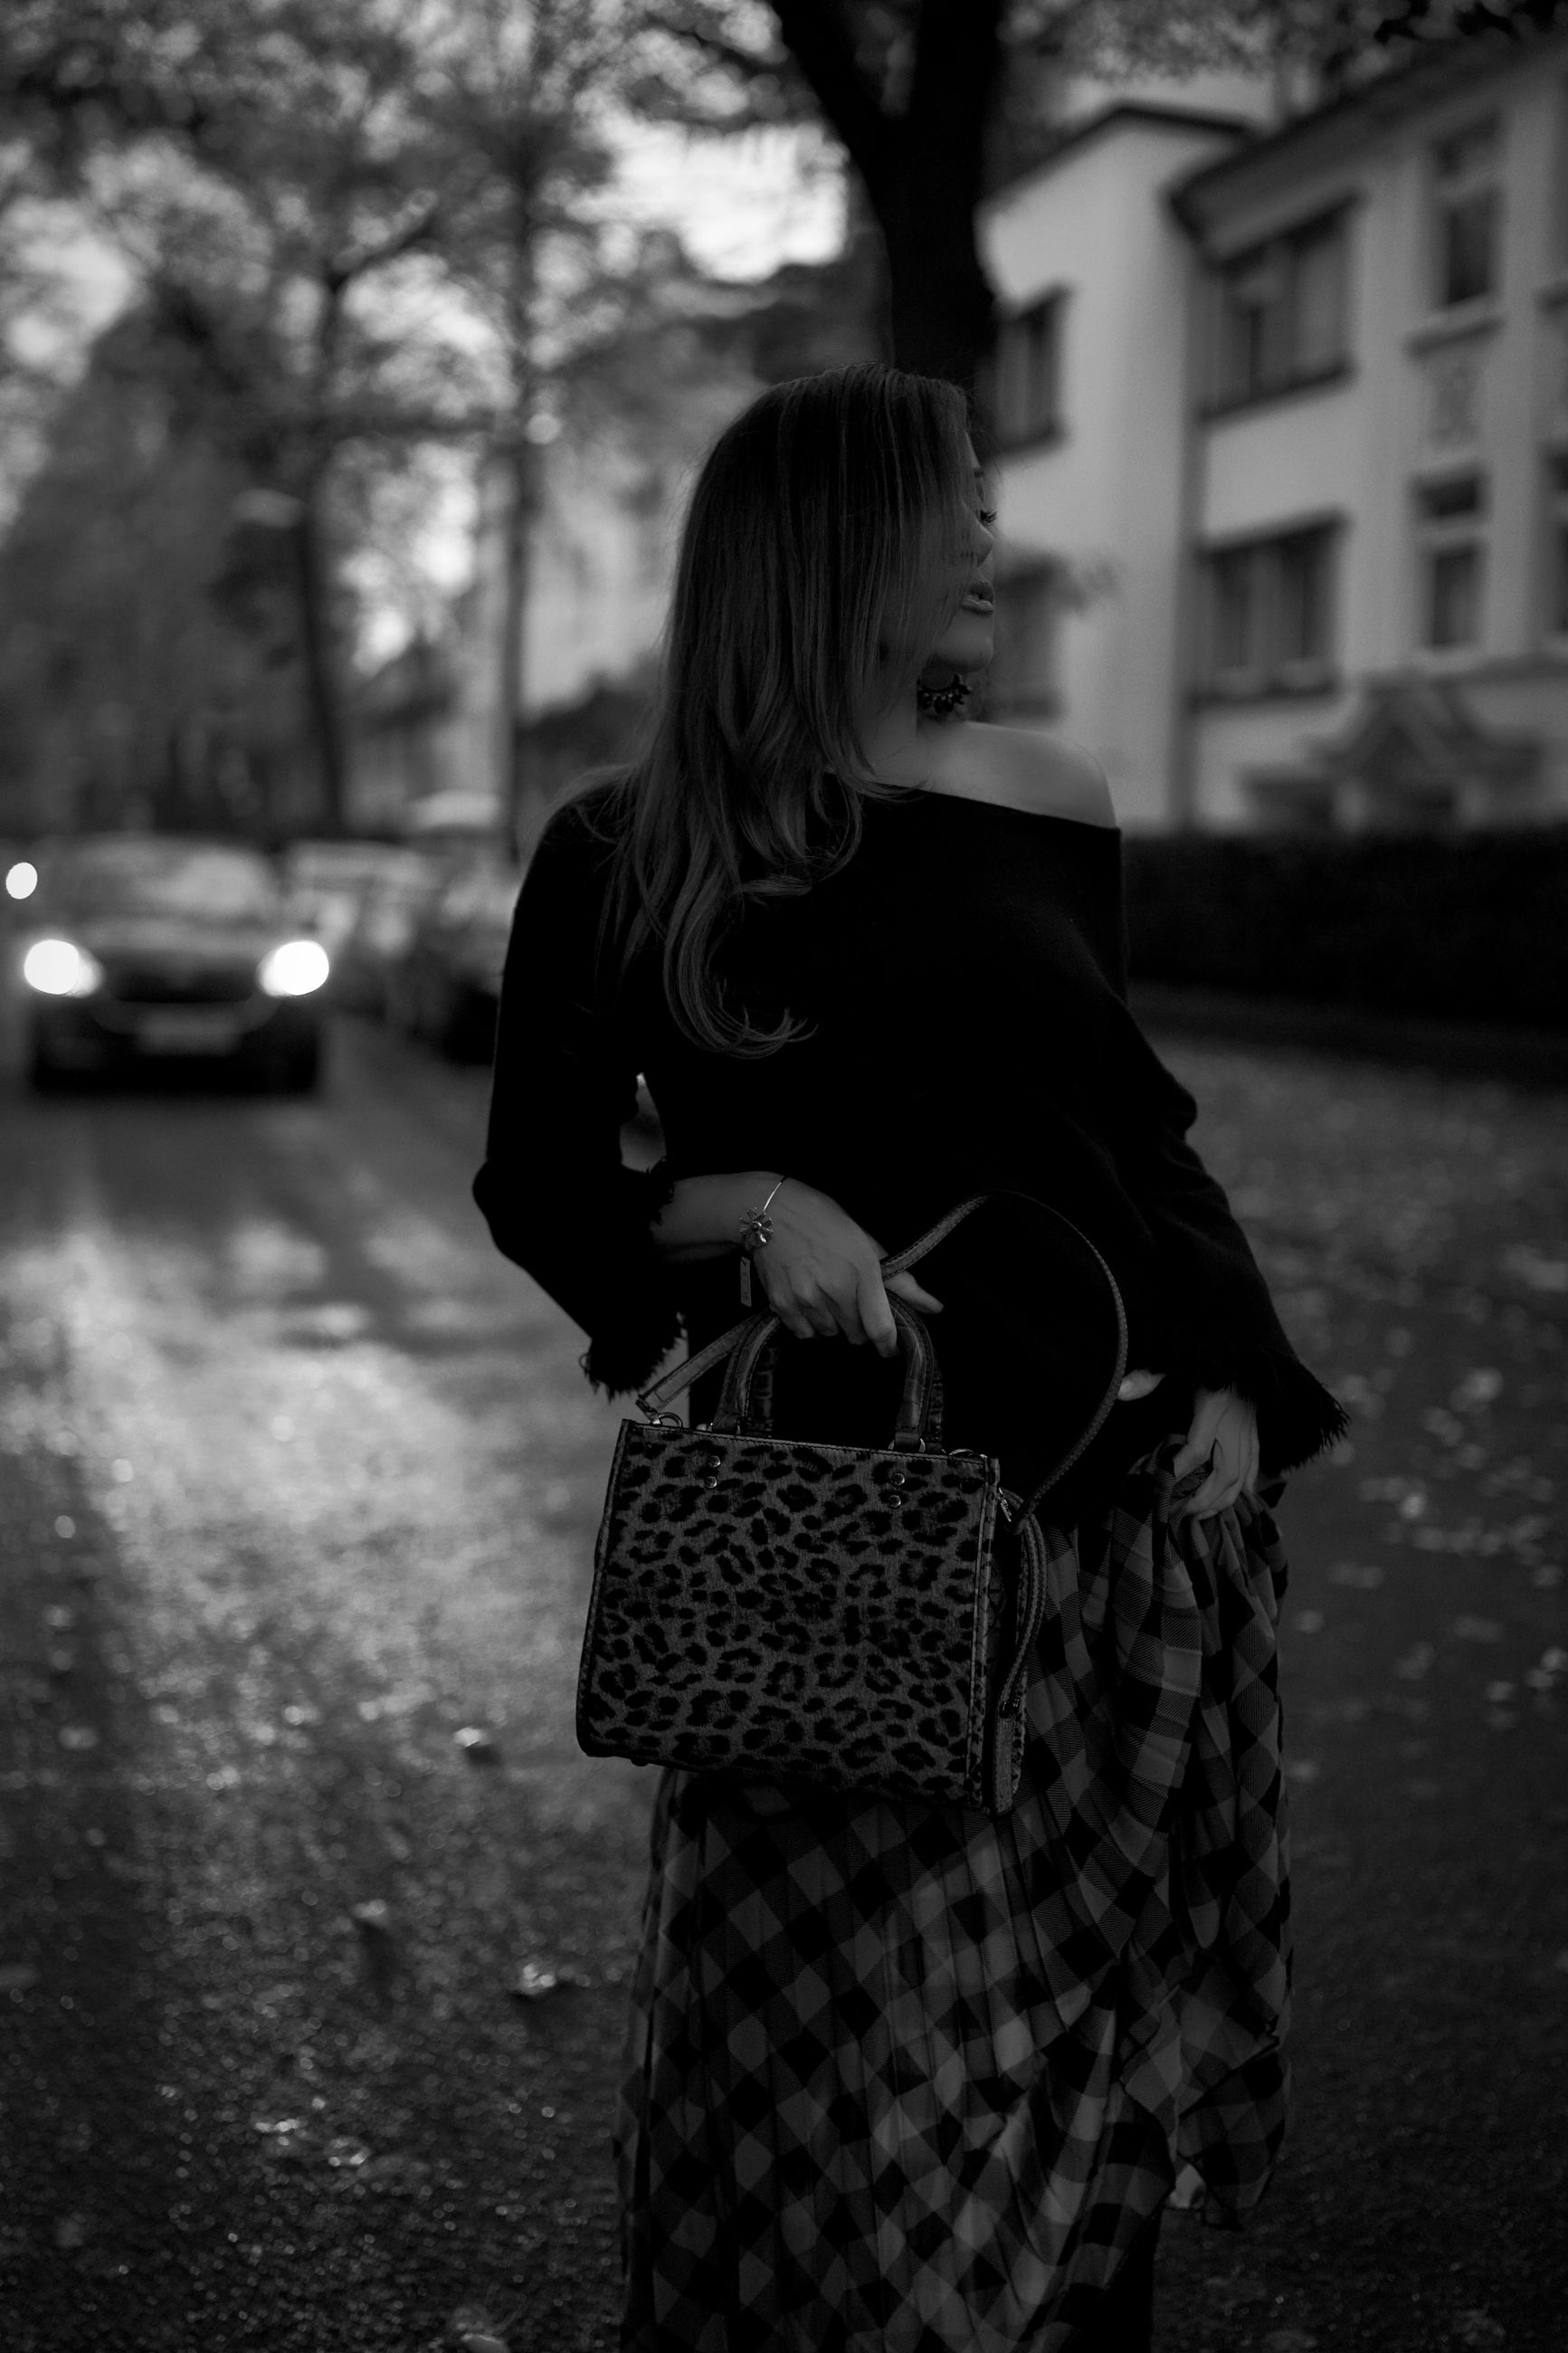 black, one person, white, black and white, women, monochrome, adult, monochrome photography, snapshot, darkness, city, street, focus on foreground, dress, architecture, car, young adult, lifestyles, standing, clothing, transportation, three quarter length, casual clothing, person, tree, nature, outdoors, mode of transportation, motor vehicle, female, leisure activity, road, day, built structure, rear view, vehicle, emotion, full length, hairstyle, building exterior, bag, plant, looking